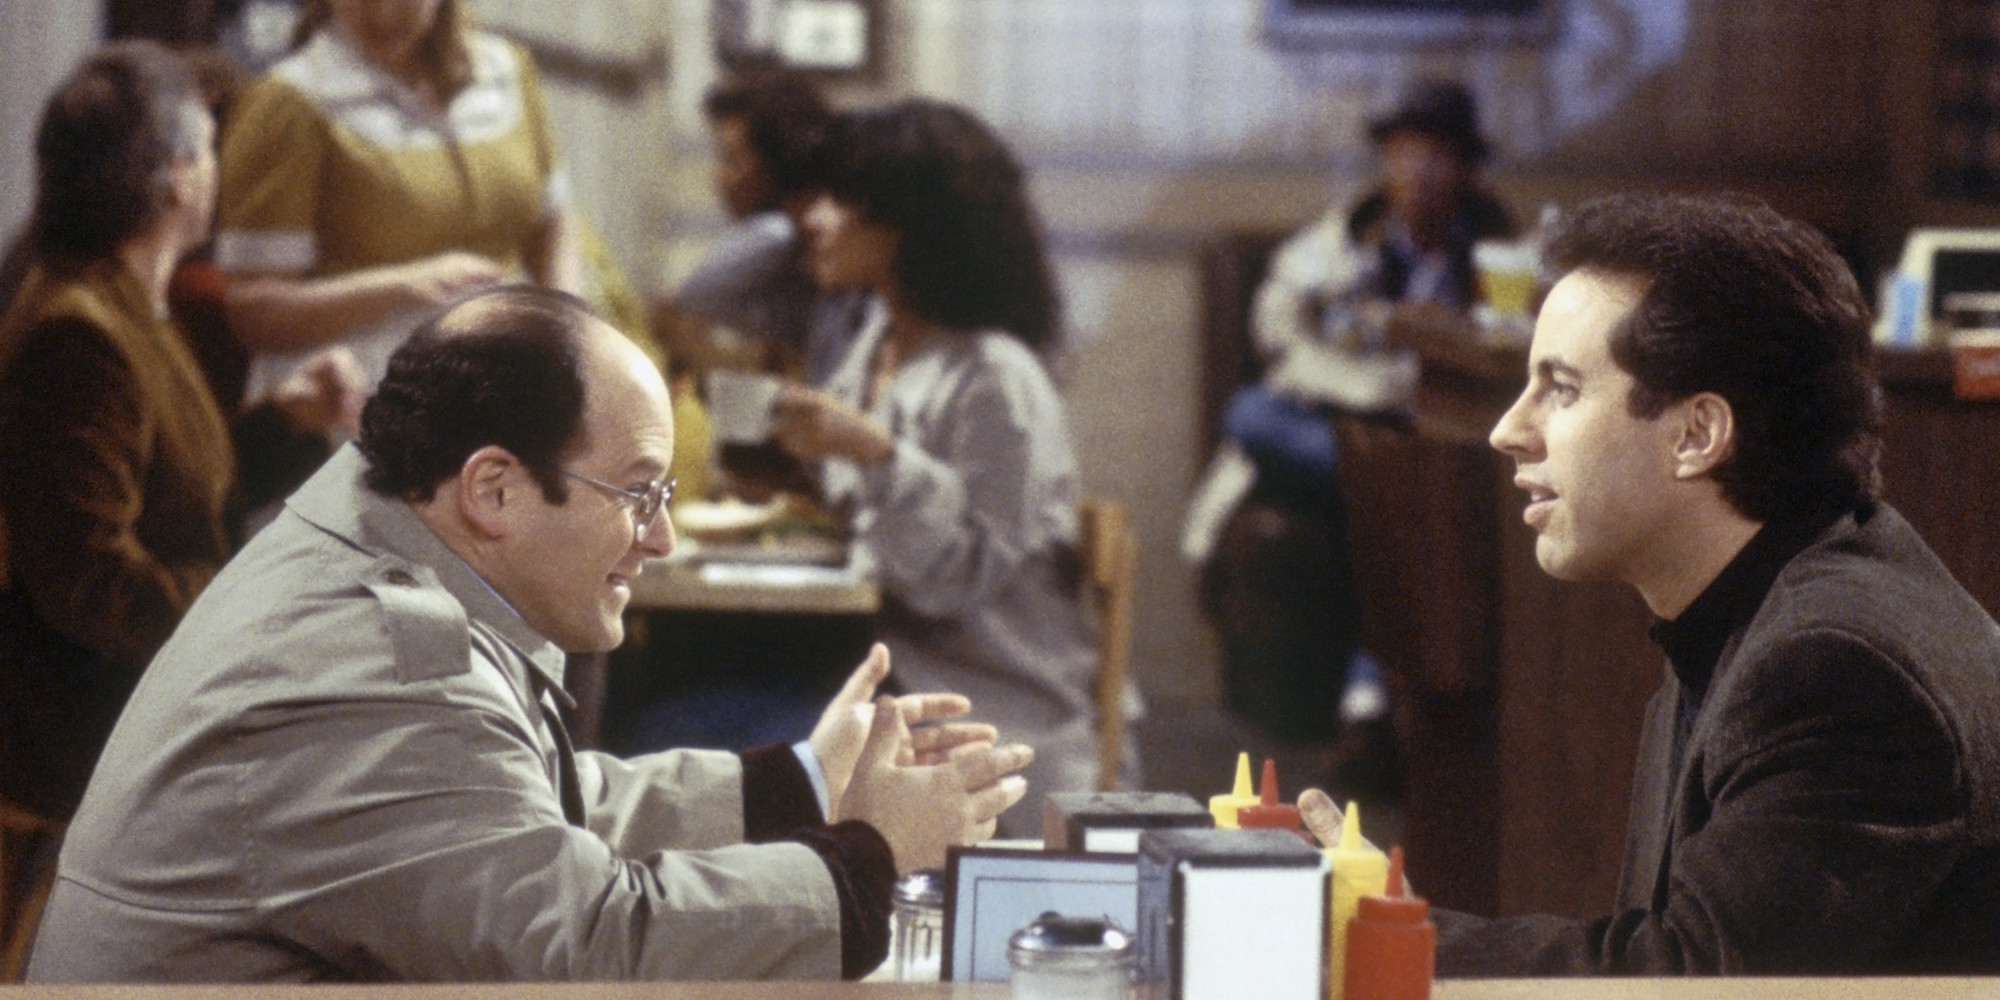 Seinfeld Quotes Yada Yada Yada Here Are The 16 Greatest 'seinfeld' Quotes Of All